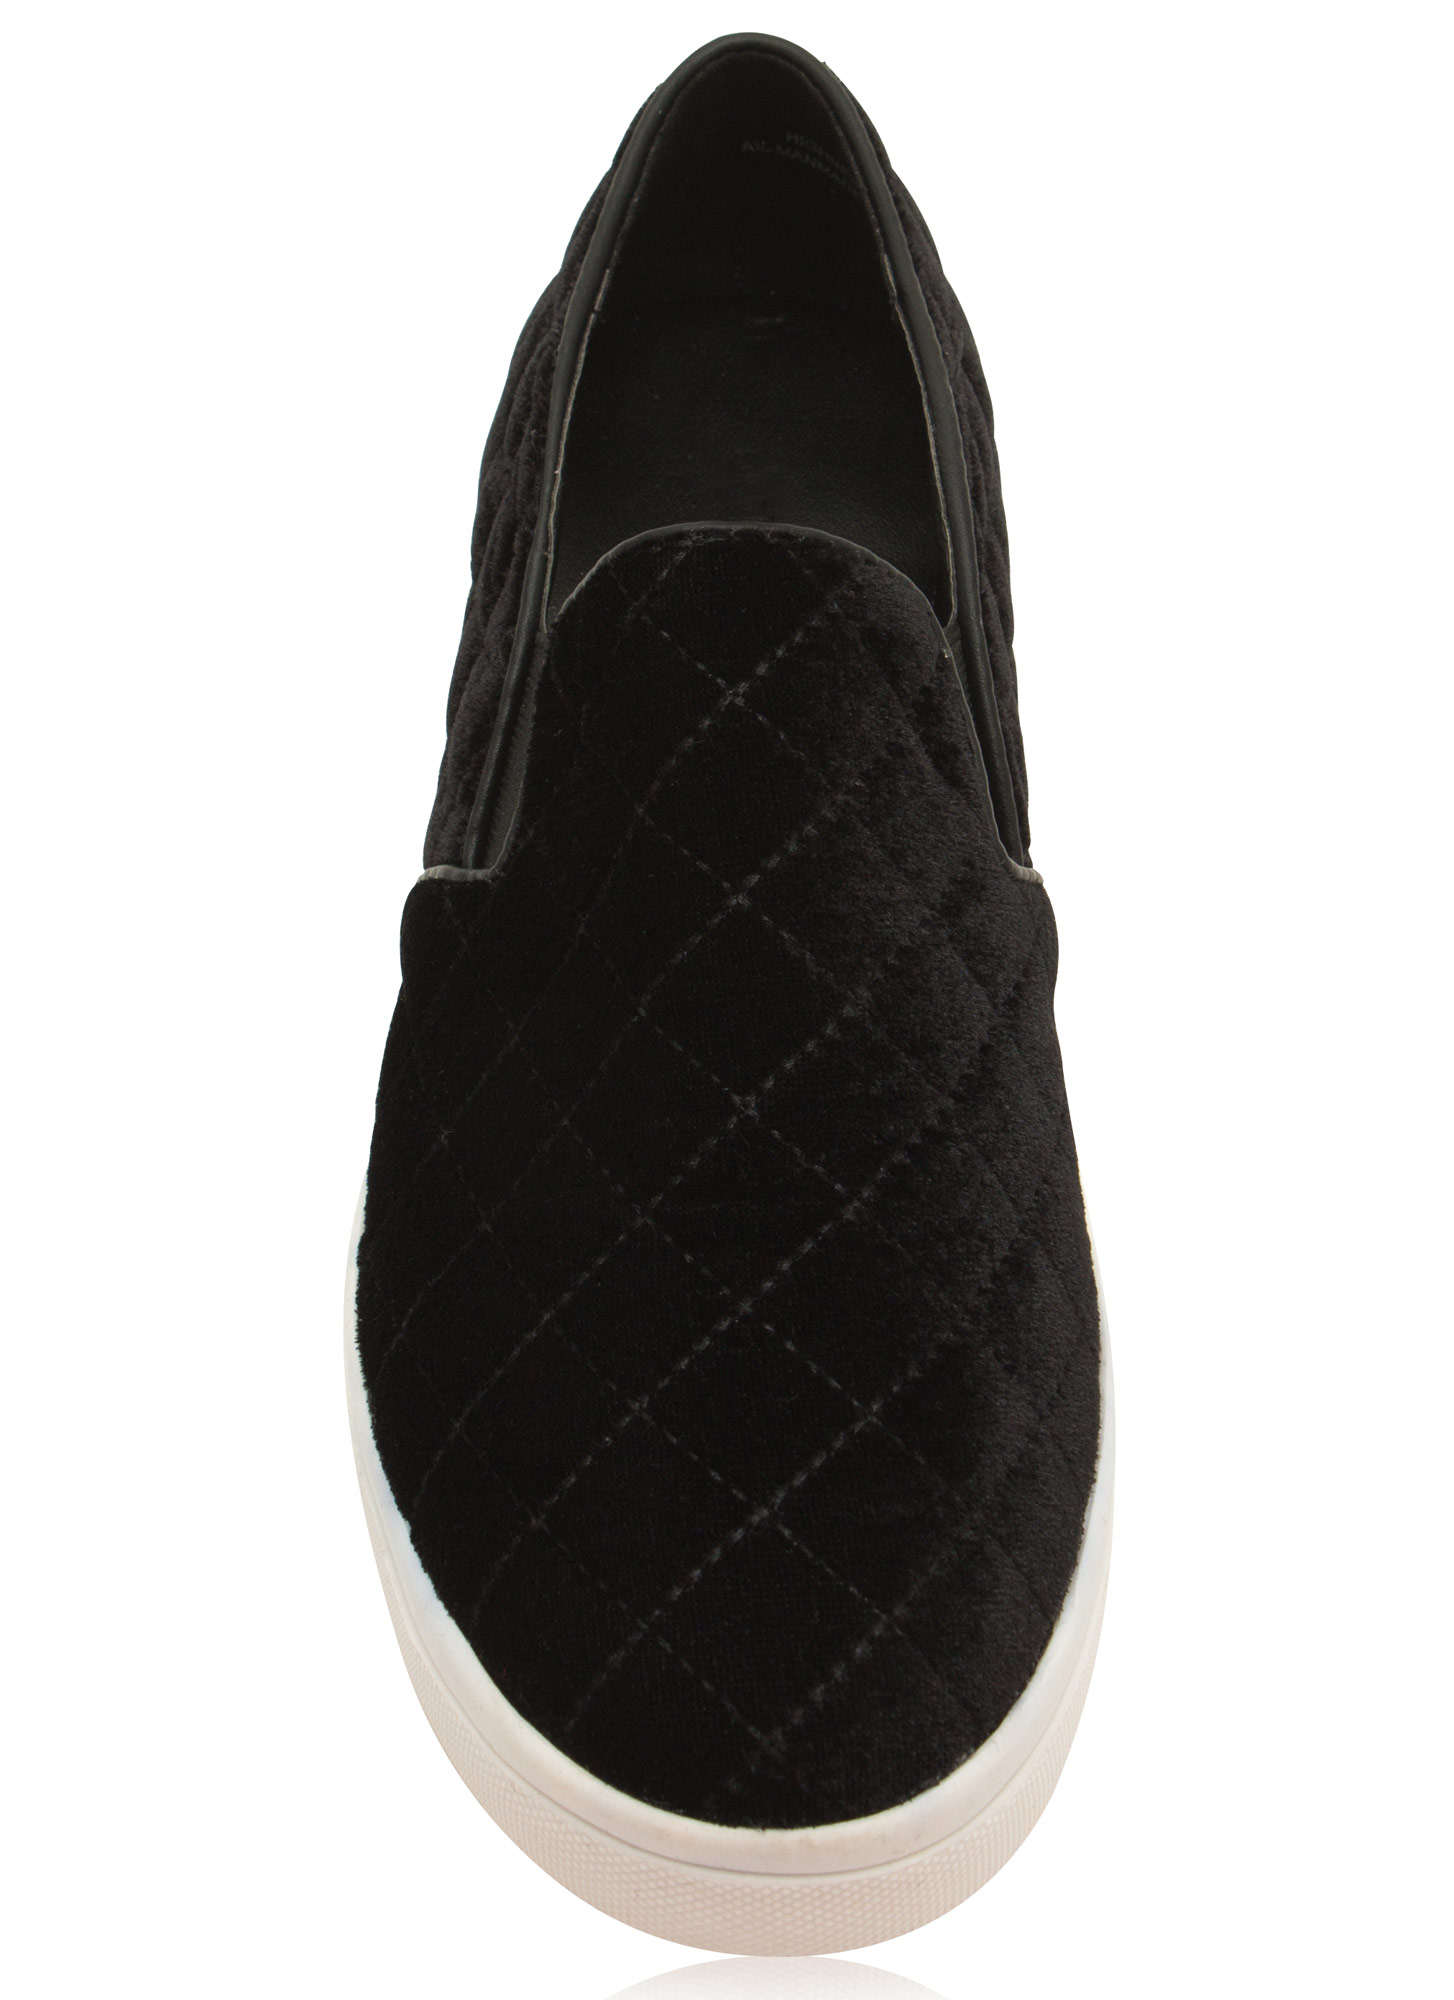 Quilt Trip Velvety Slip-On Sneakers BLACK